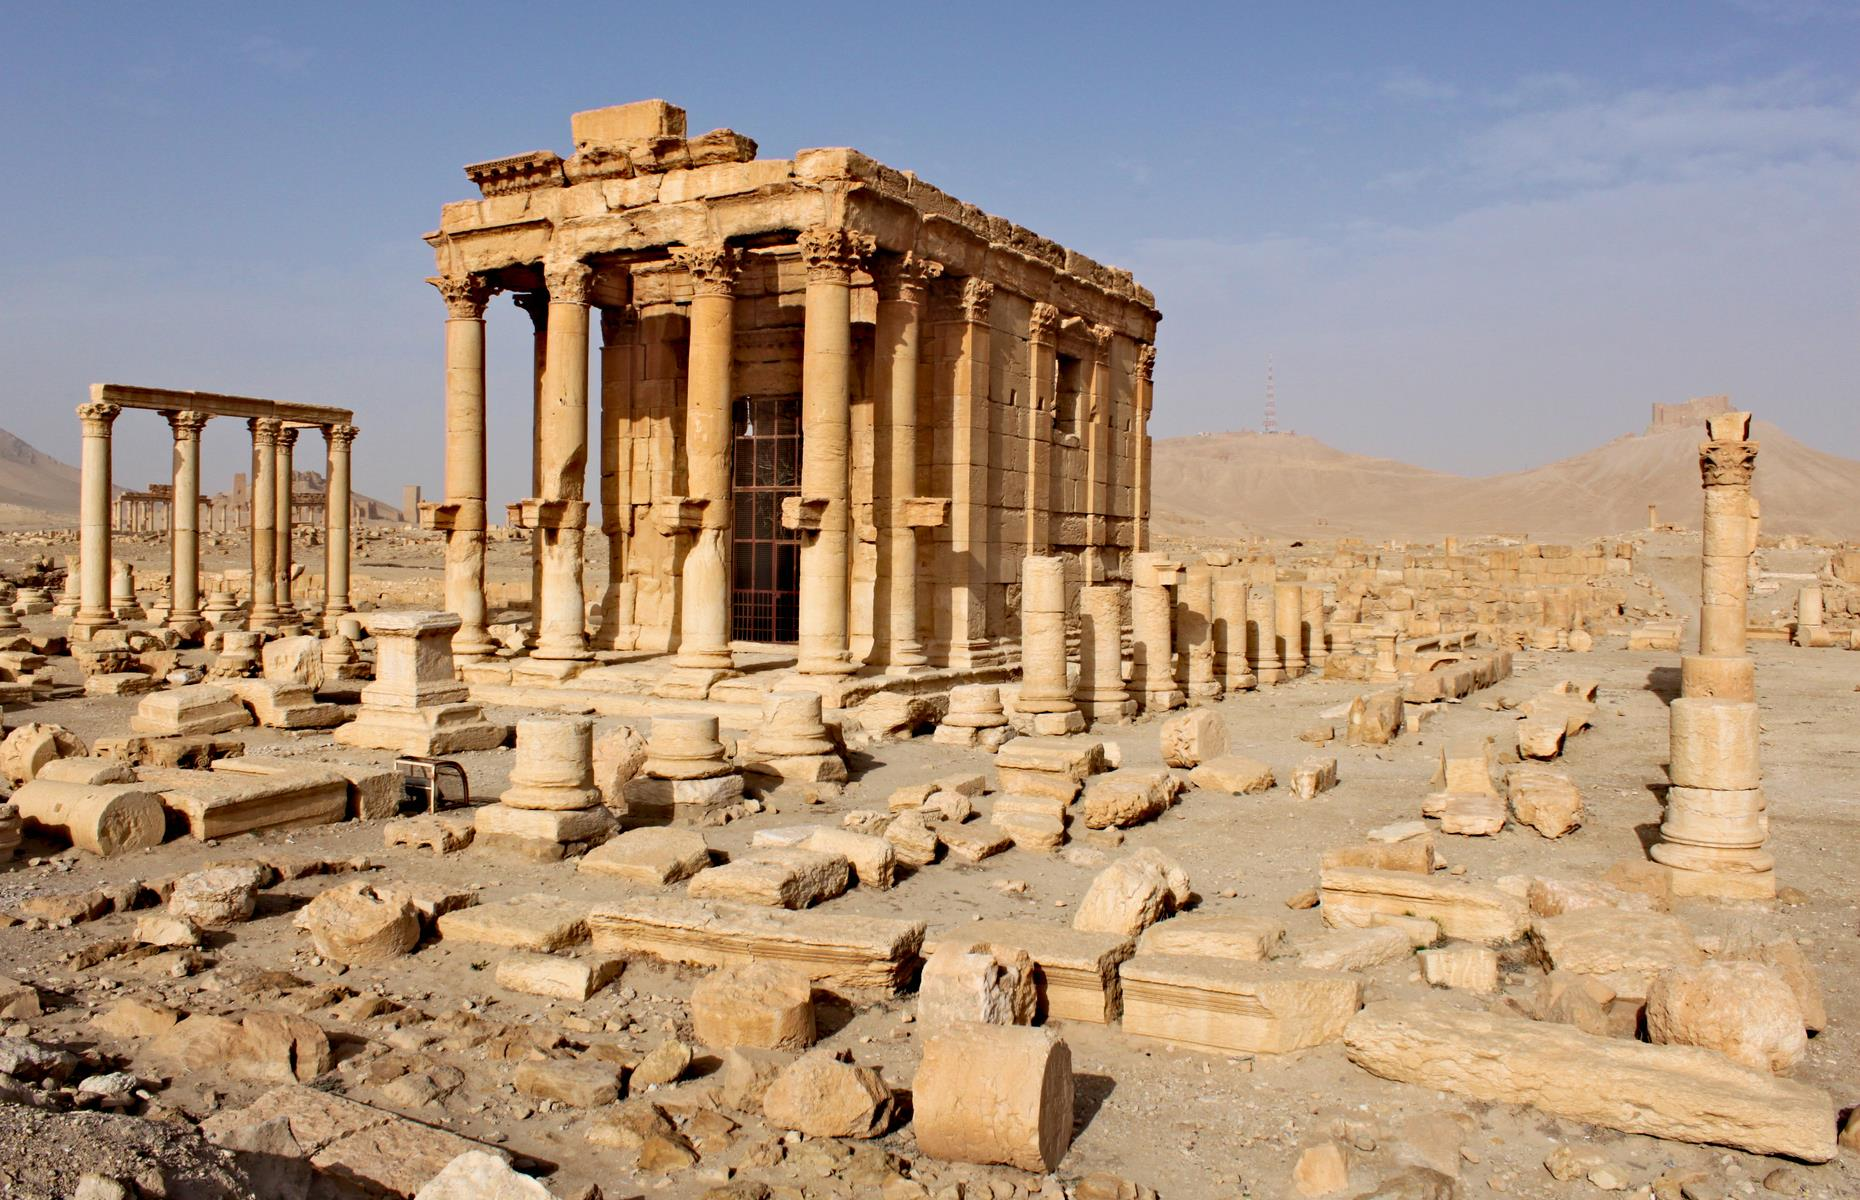 "Slide 44 of 53: The desert ruins of Palmyra, which combine Greco-Roman, Persian and Arabian architecture, were one of the ancient world's most valuable cultural centers and renowned for their beauty. Palmyra has faced repeated attacks, but the precious site was extensively damaged during Isis' occupation in 2015. UNESCO called the destruction of the ruins a ""war crime and an immense loss for the Syrian people and for humanity""."